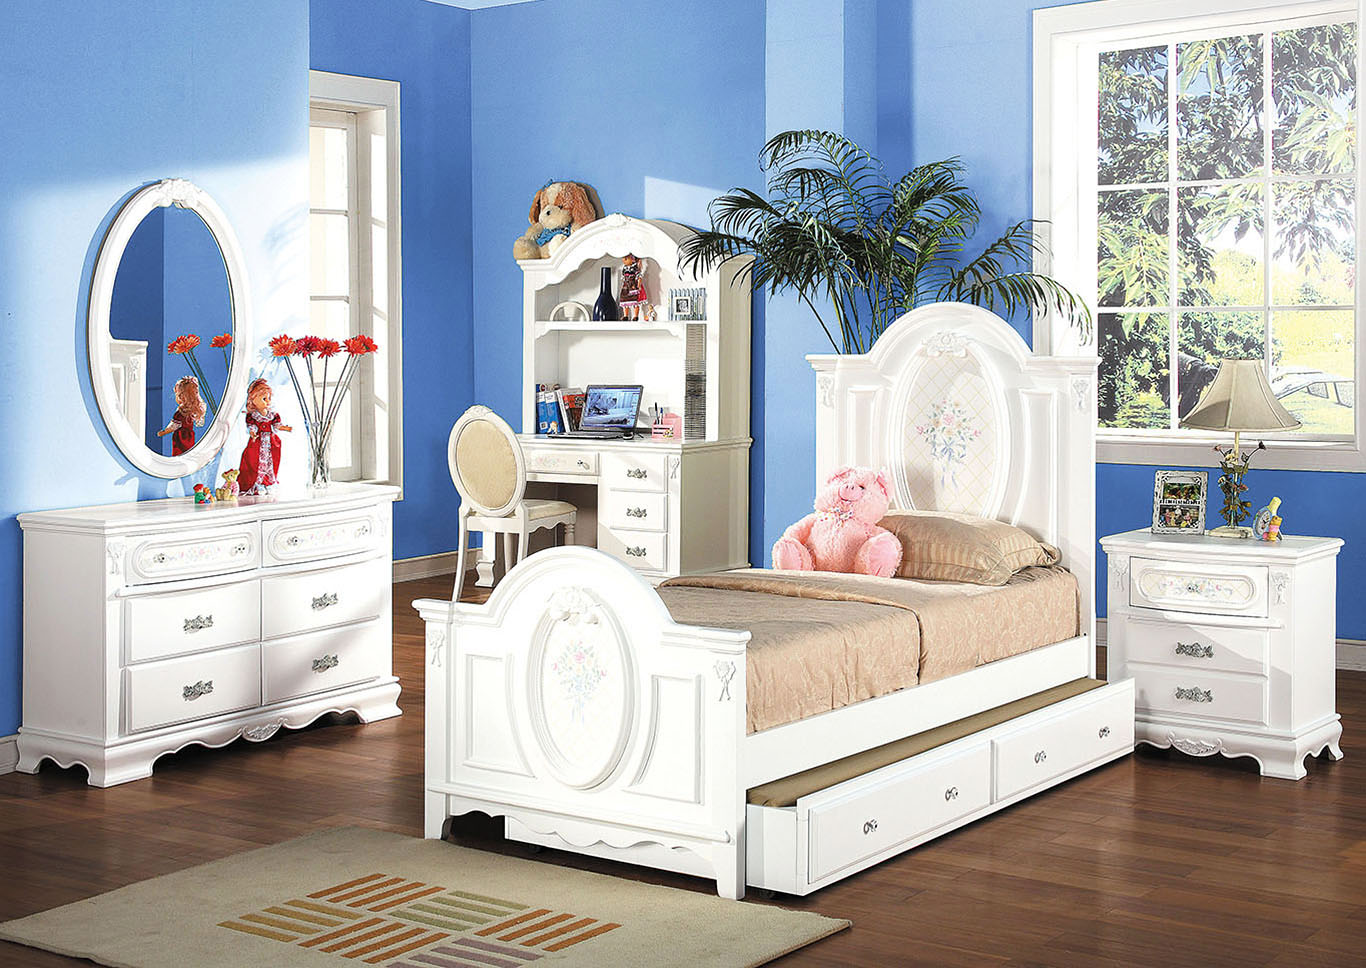 Flora White Twin Bed,Acme